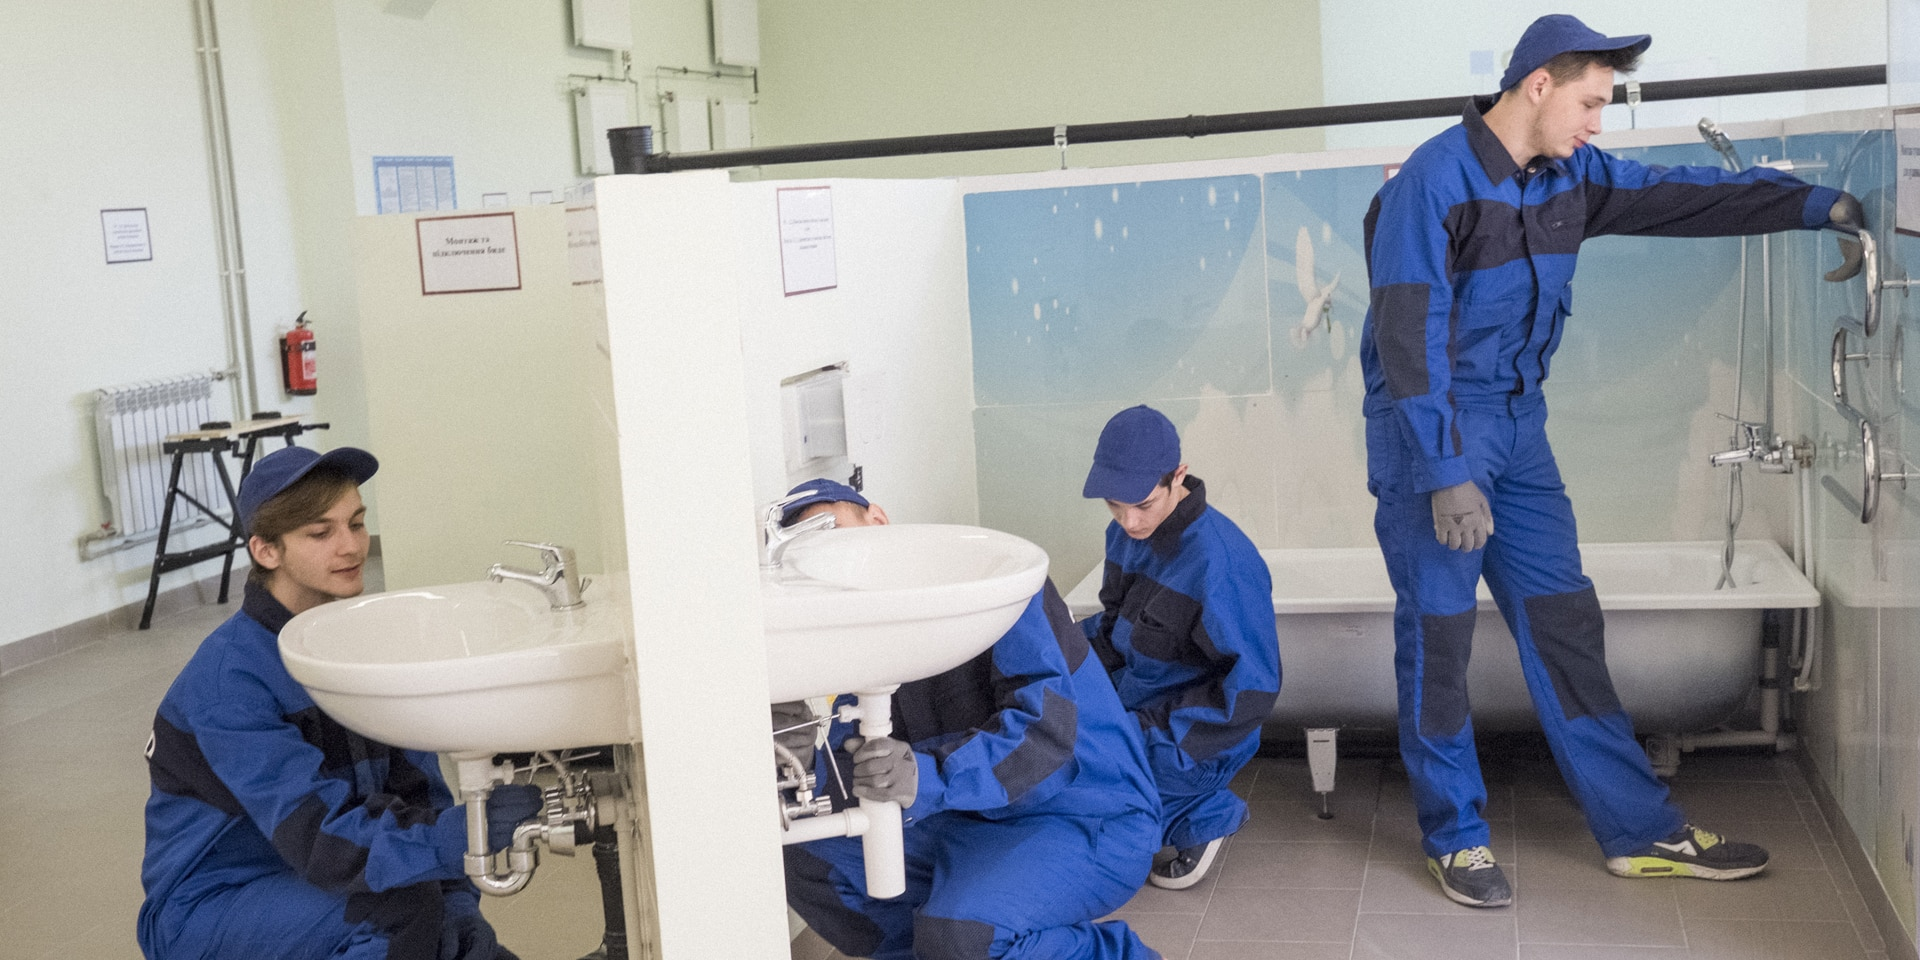 Four trainees installing sanitation facilities in a vocational school training environment in Ukraine.